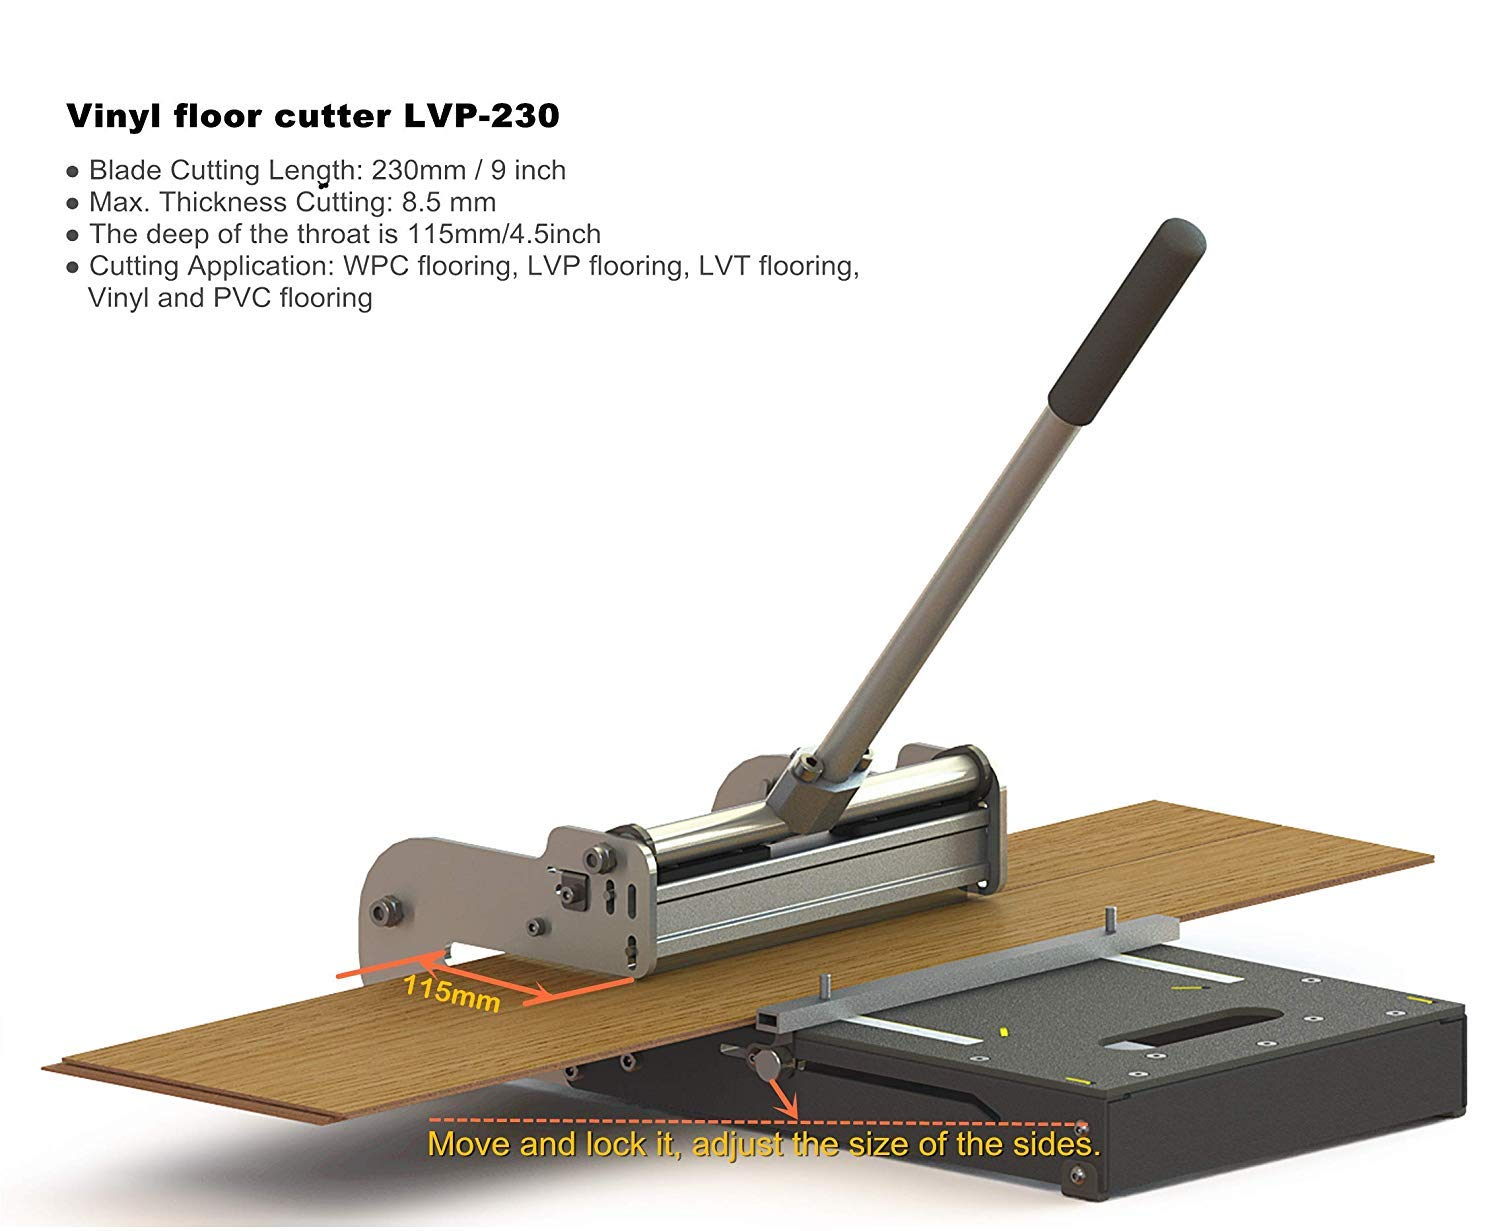 MantisTol 9'' Pro LVT/VCT/LVP/PVC/WPC/Vinyl Flooring Cutter LVP-230;Pls pay attention to the same brand and seller when buying,Please don't buy counterfeit by mistake! by MANTISTOL